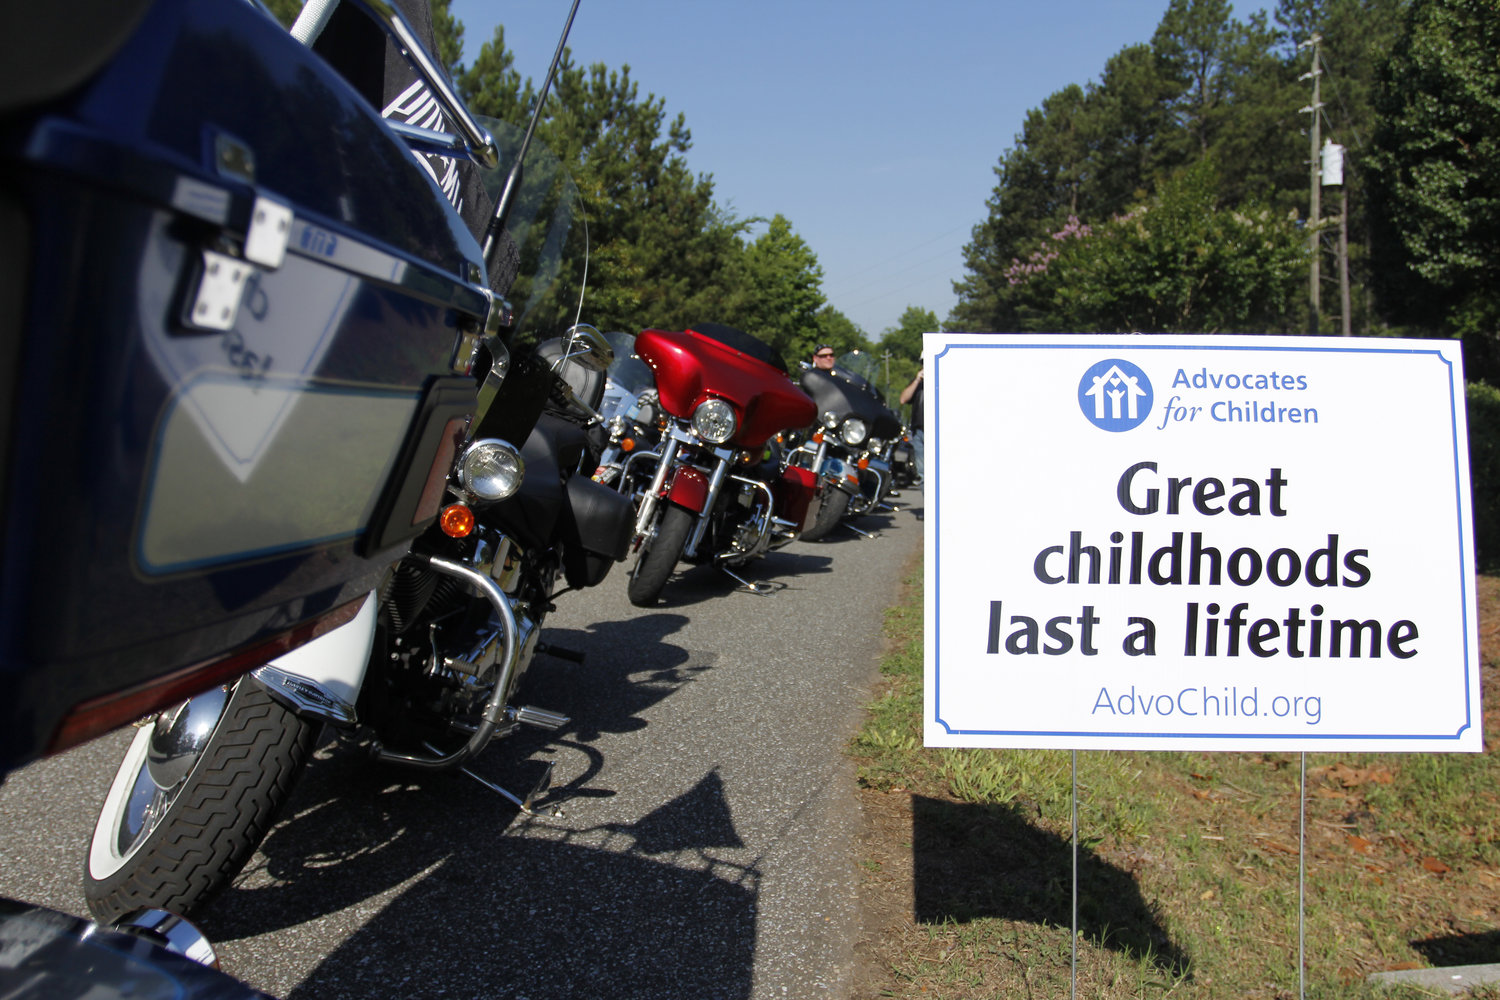 Iron Order Motorcycle Club of Cartersville will present its 12th annual motorcycle ride benefitting Advocates for Children's Flowering Branch Children's Shelter June 1.